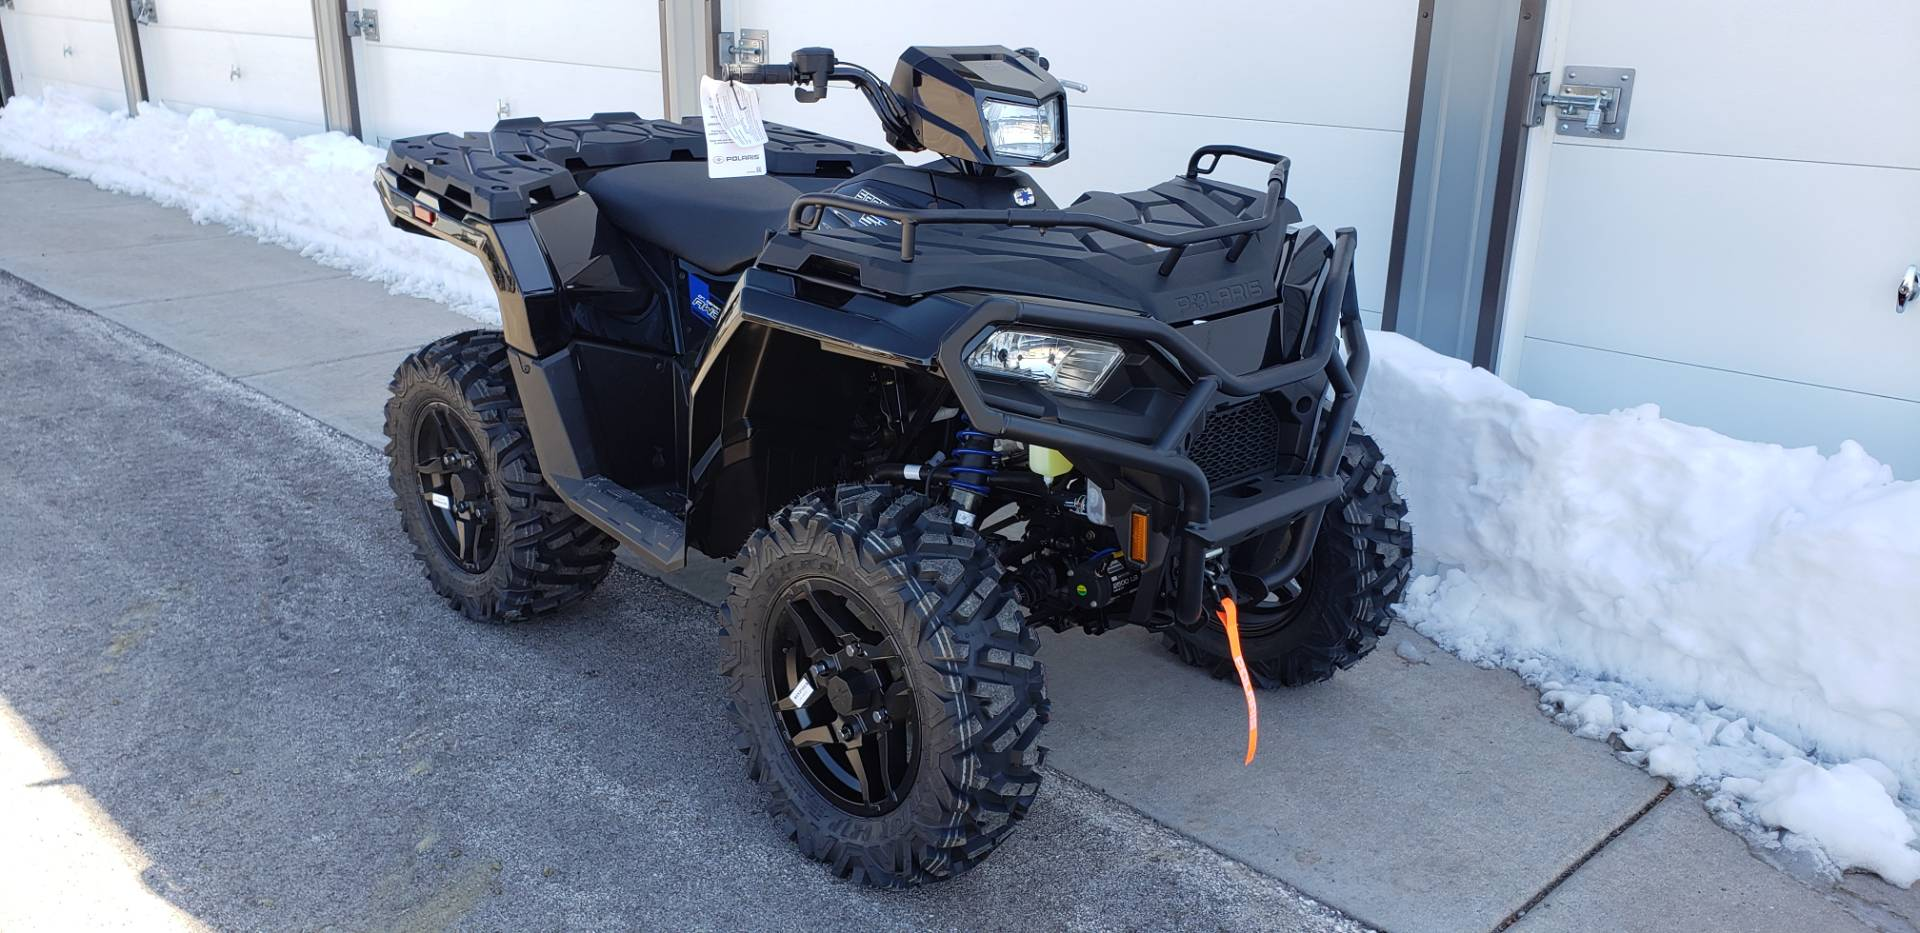 2021 Polaris Sportsman 570 Trail in Rapid City, South Dakota - Photo 2